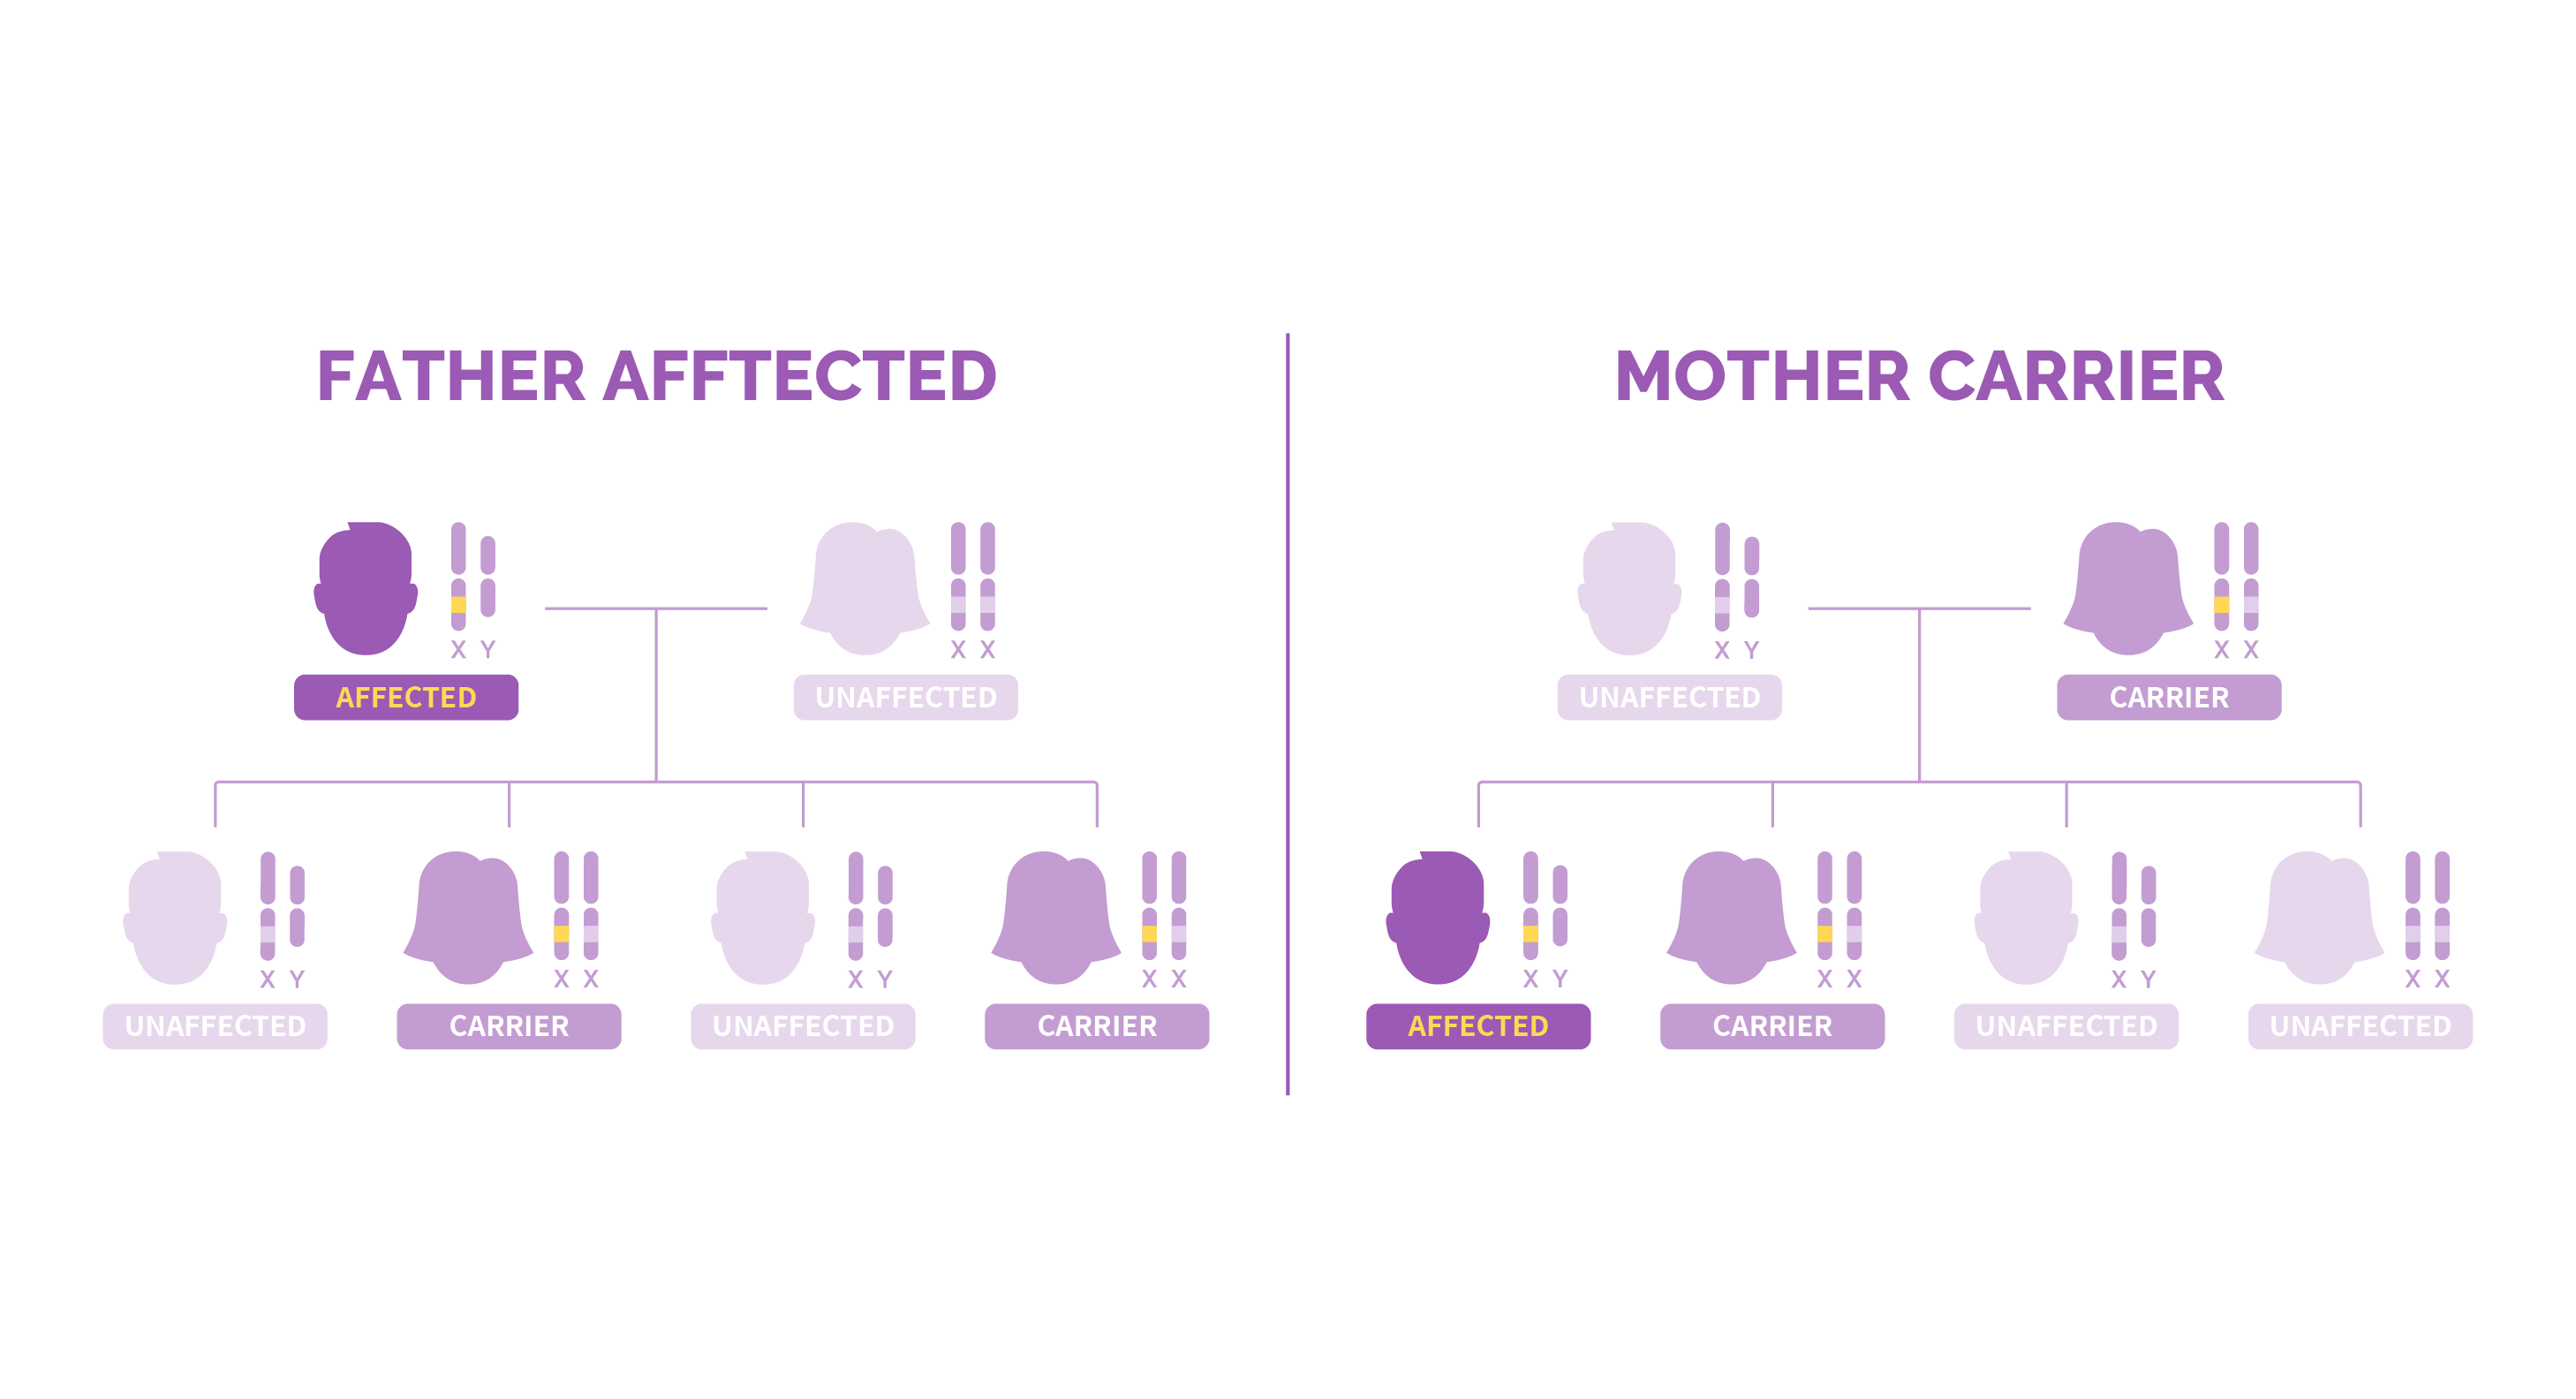 Two family trees showing both possible cases of X-linked recessive inheritance pattern.